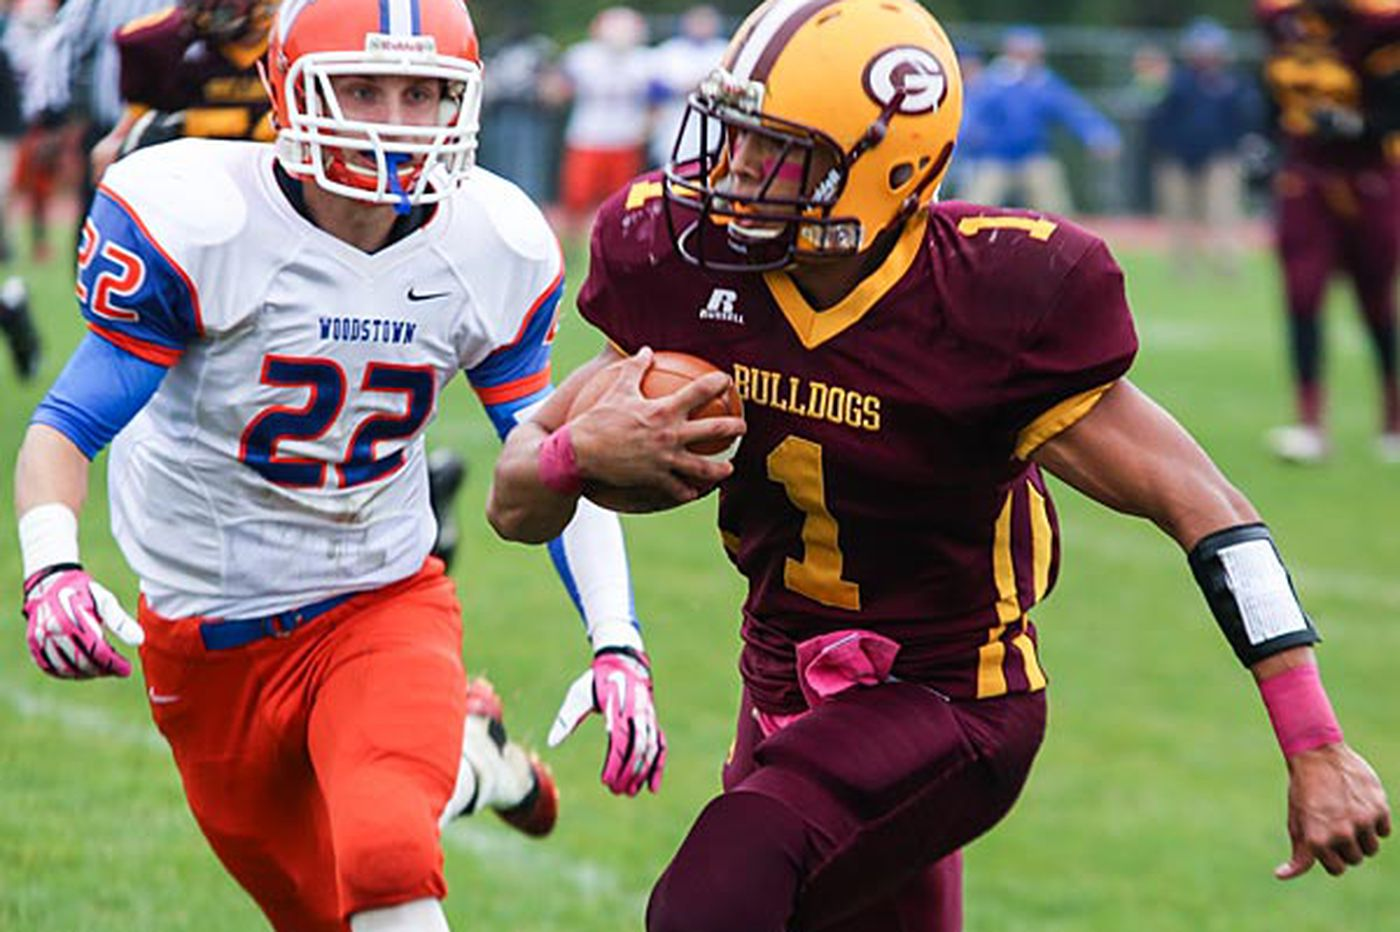 Glassboro's James follows brother to Rutgers